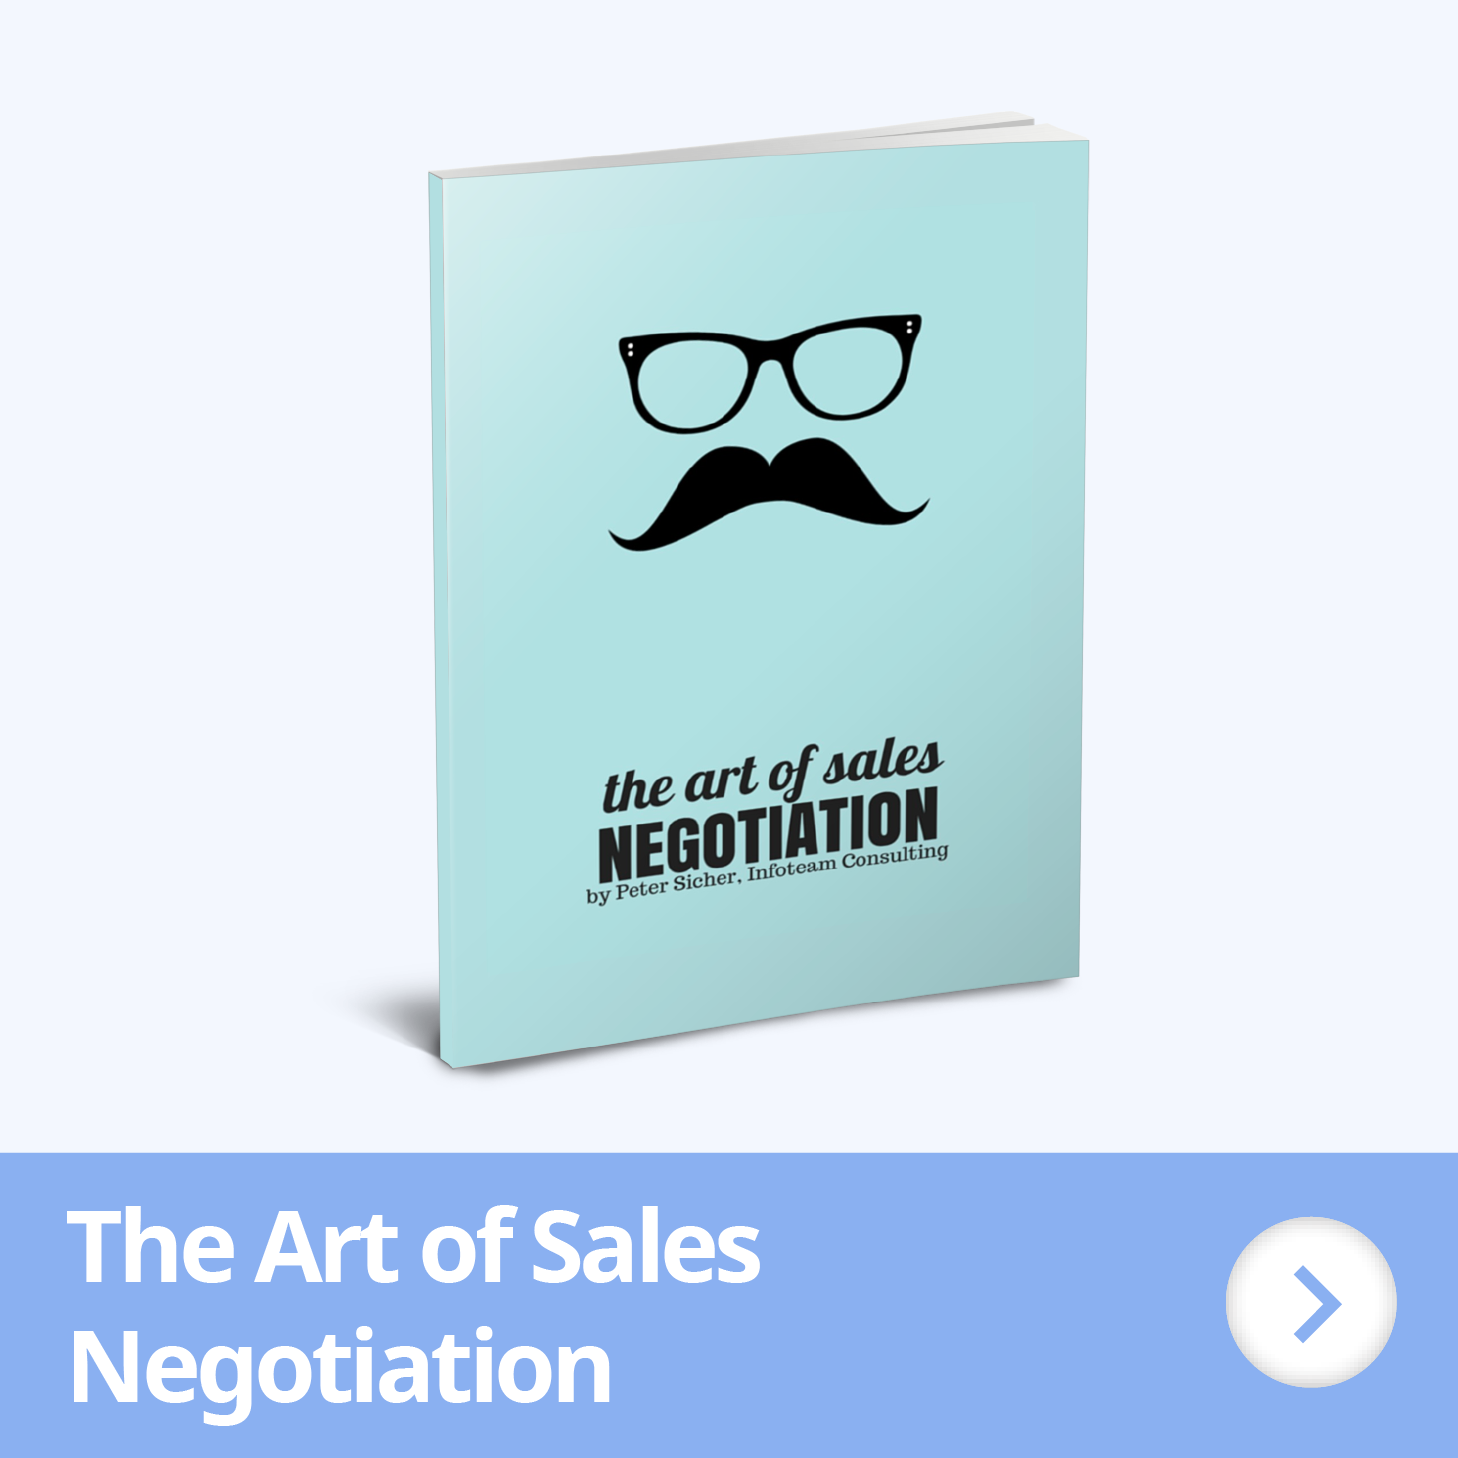 The Art of Sales Negotiation